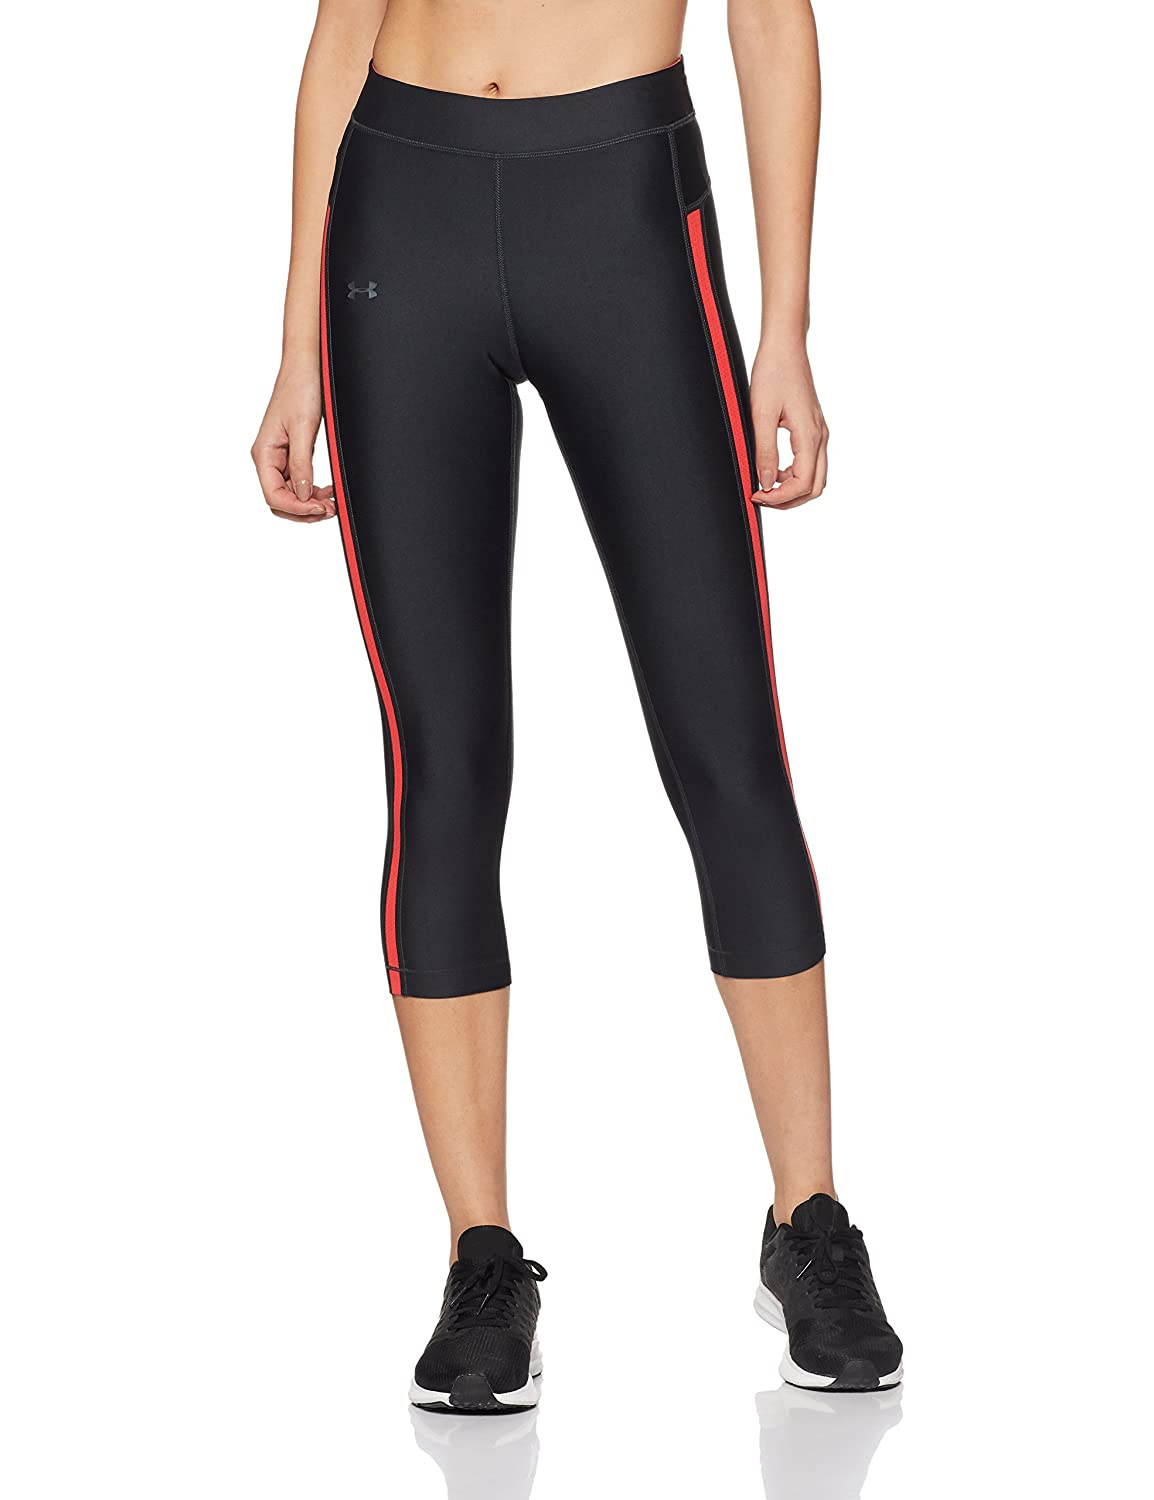 12d2a0f847 Under Armour HeatGear Armour Cool Switch Capri Women's Sports Leggings:  Amazon.in: Clothing & Accessories